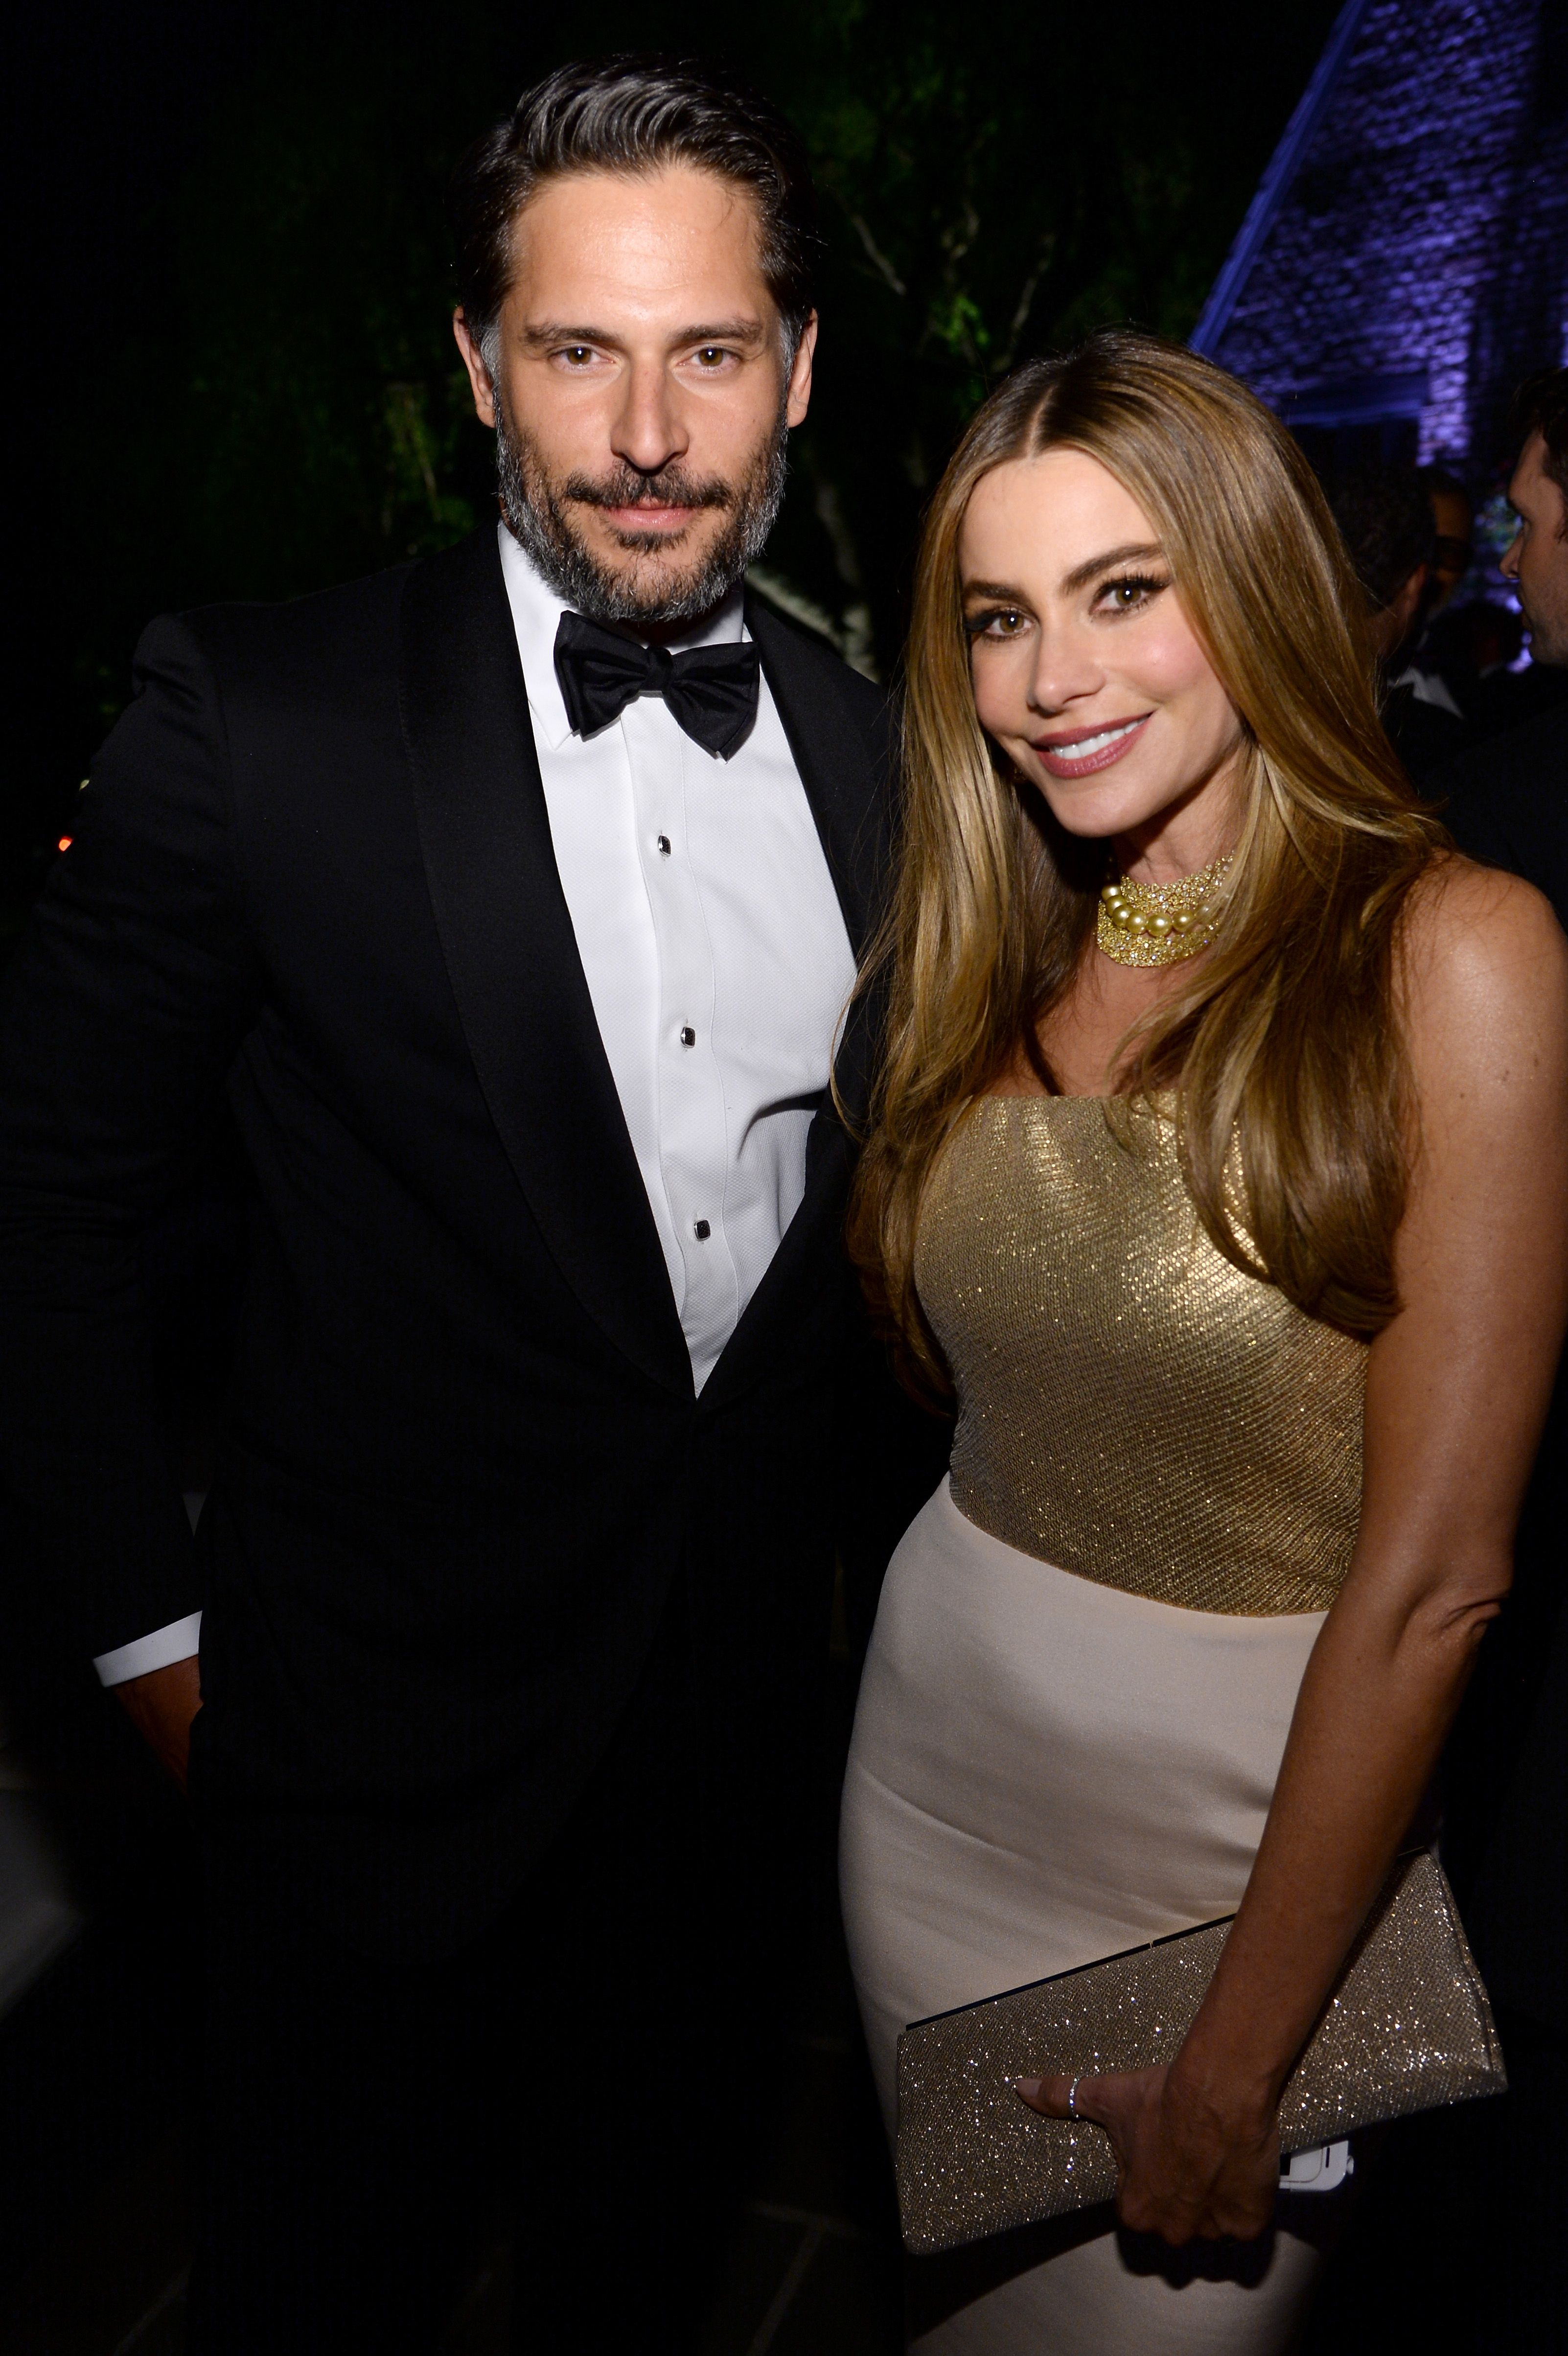 Joe Manganiello and Sofia Vergara Vergara's Modern Family costar Jesse Tyler Ferguson introduced the couple at a party, and later gave Manganiello Vergara's phone number to help move things along. The genetically-blessed couple has been married since 2015.